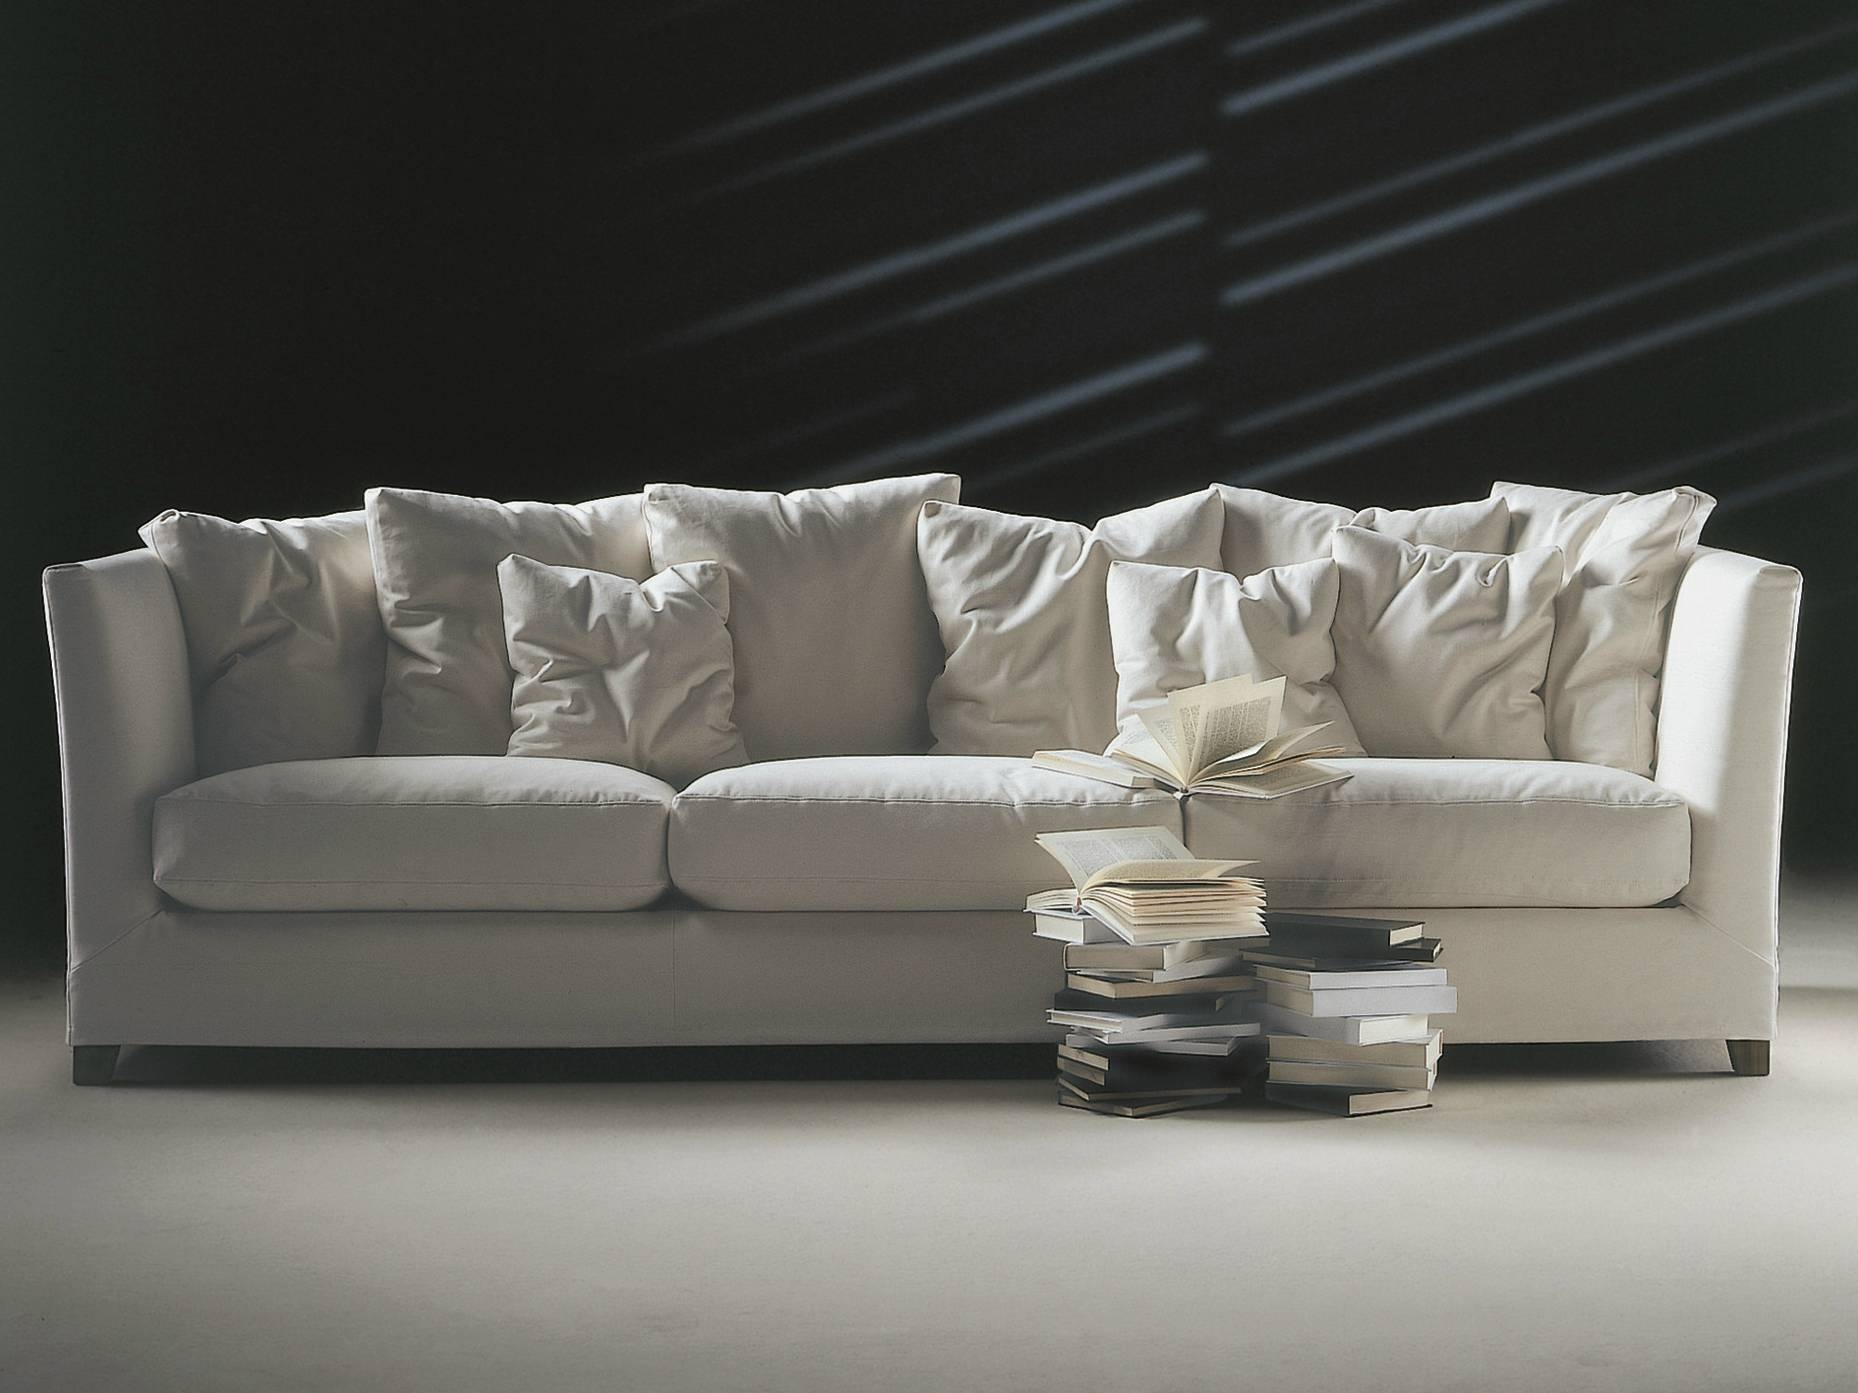 Sofa Design. Sofa With Removable Cover Soft Style: Sofa With for Sofas With Removable Covers (Image 22 of 30)